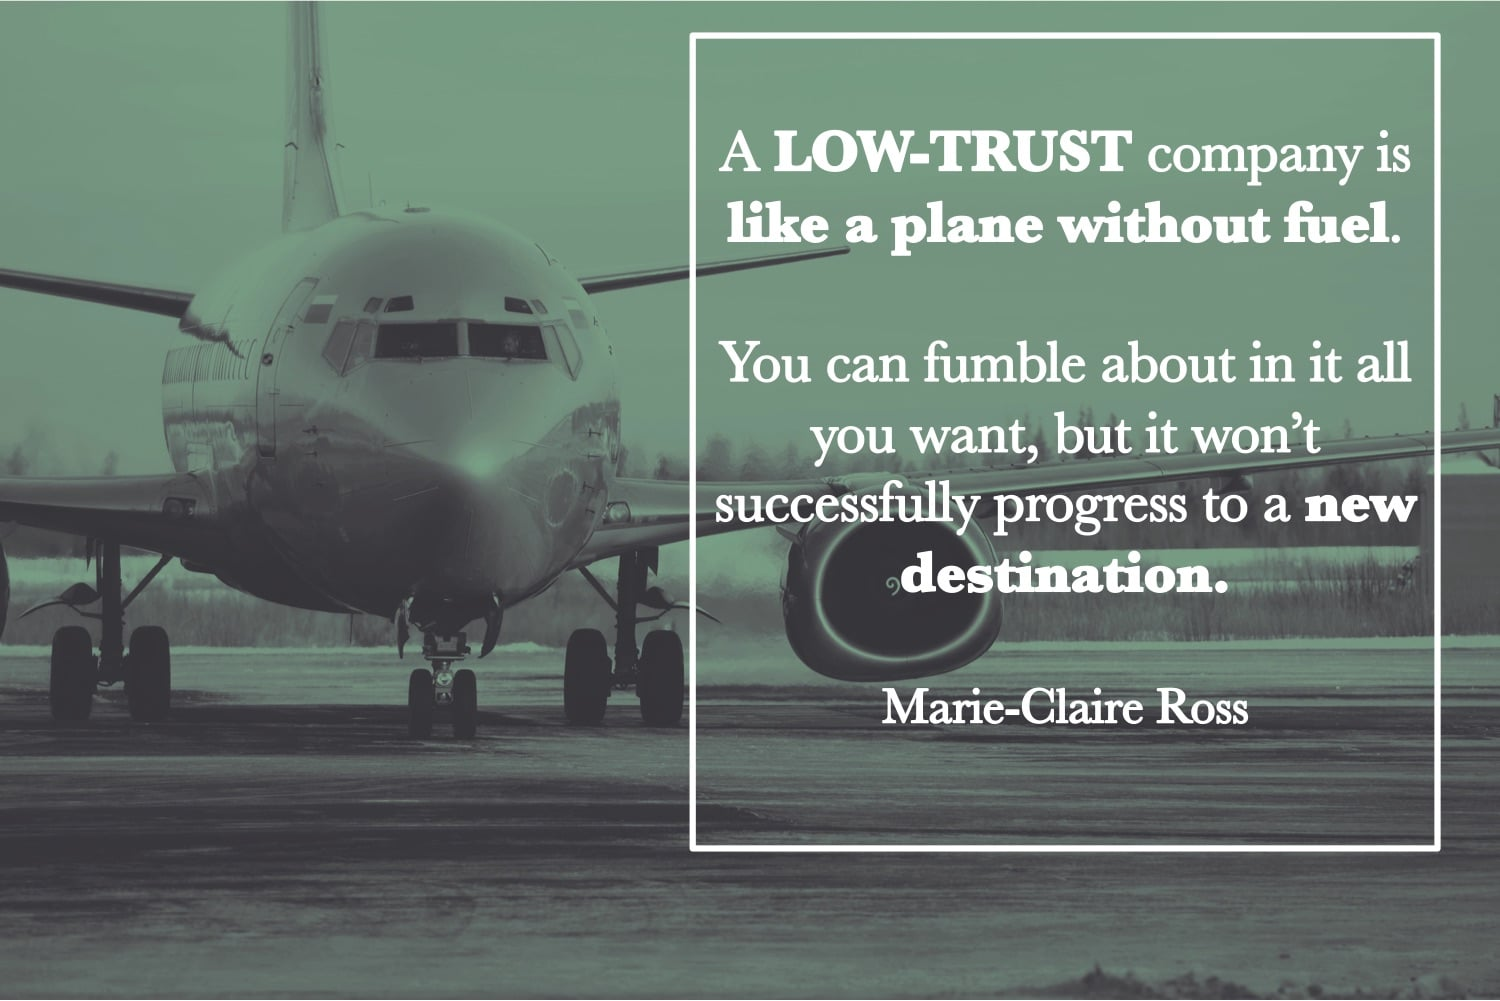 Top 20 Trust Quotes to Make you Pause